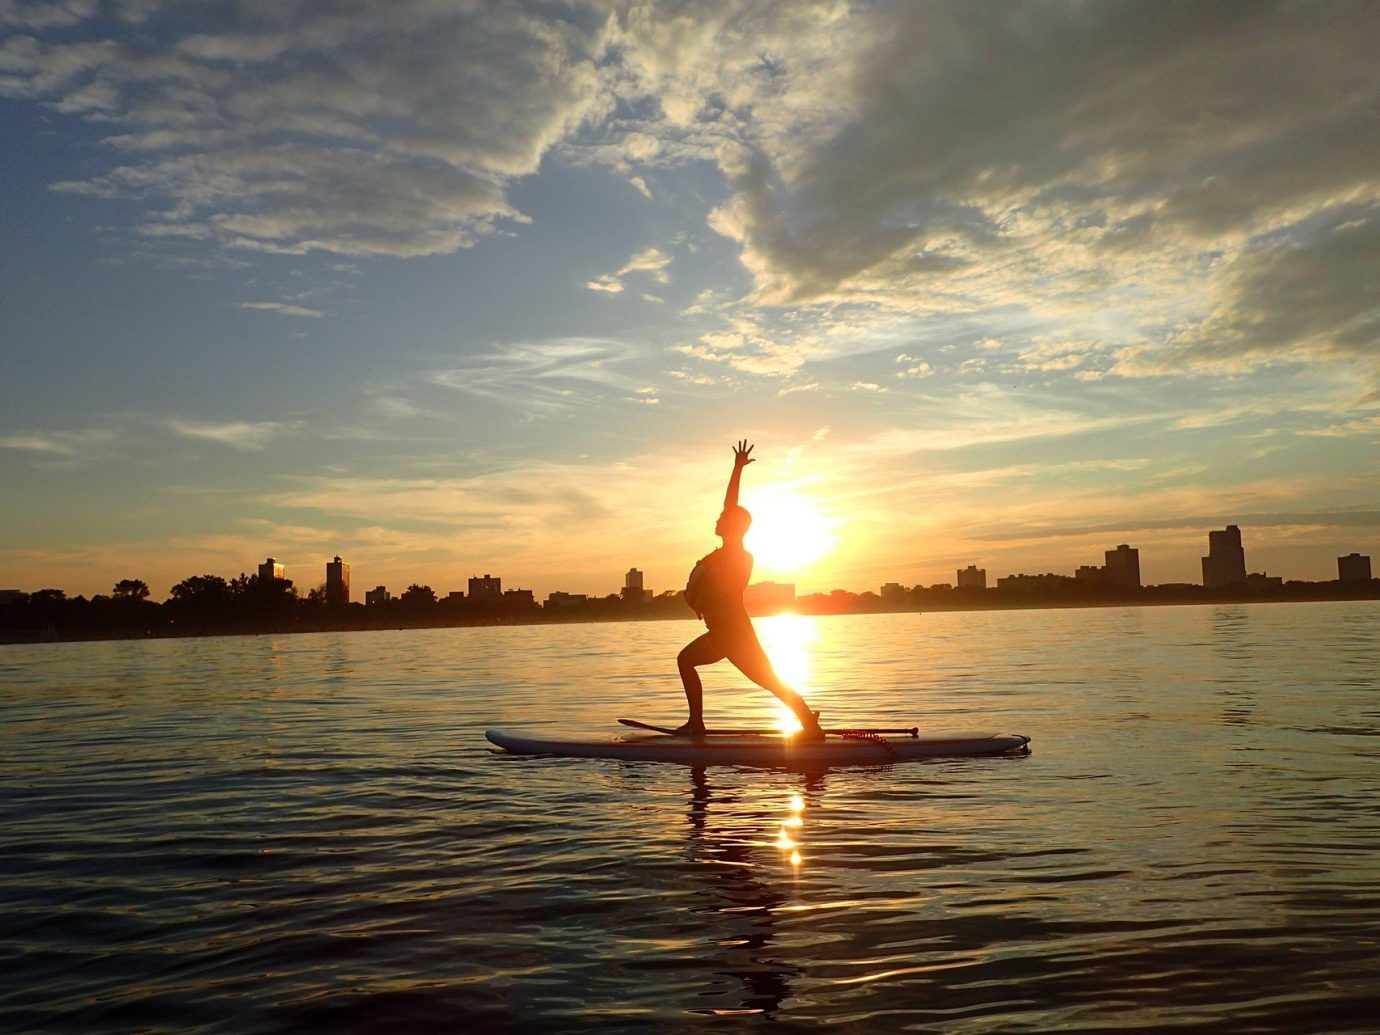 City city views fun glow golden hour Lake orange sky Outdoor Activities Outdoors paddleboarding people remote silhouette Sunset Trip Ideas Water activities Water Sports sky outdoor water Sea horizon cloud morning sunlight Ocean evening sunrise dusk Nature Sun Beach paddle dawn shore sailing vessel